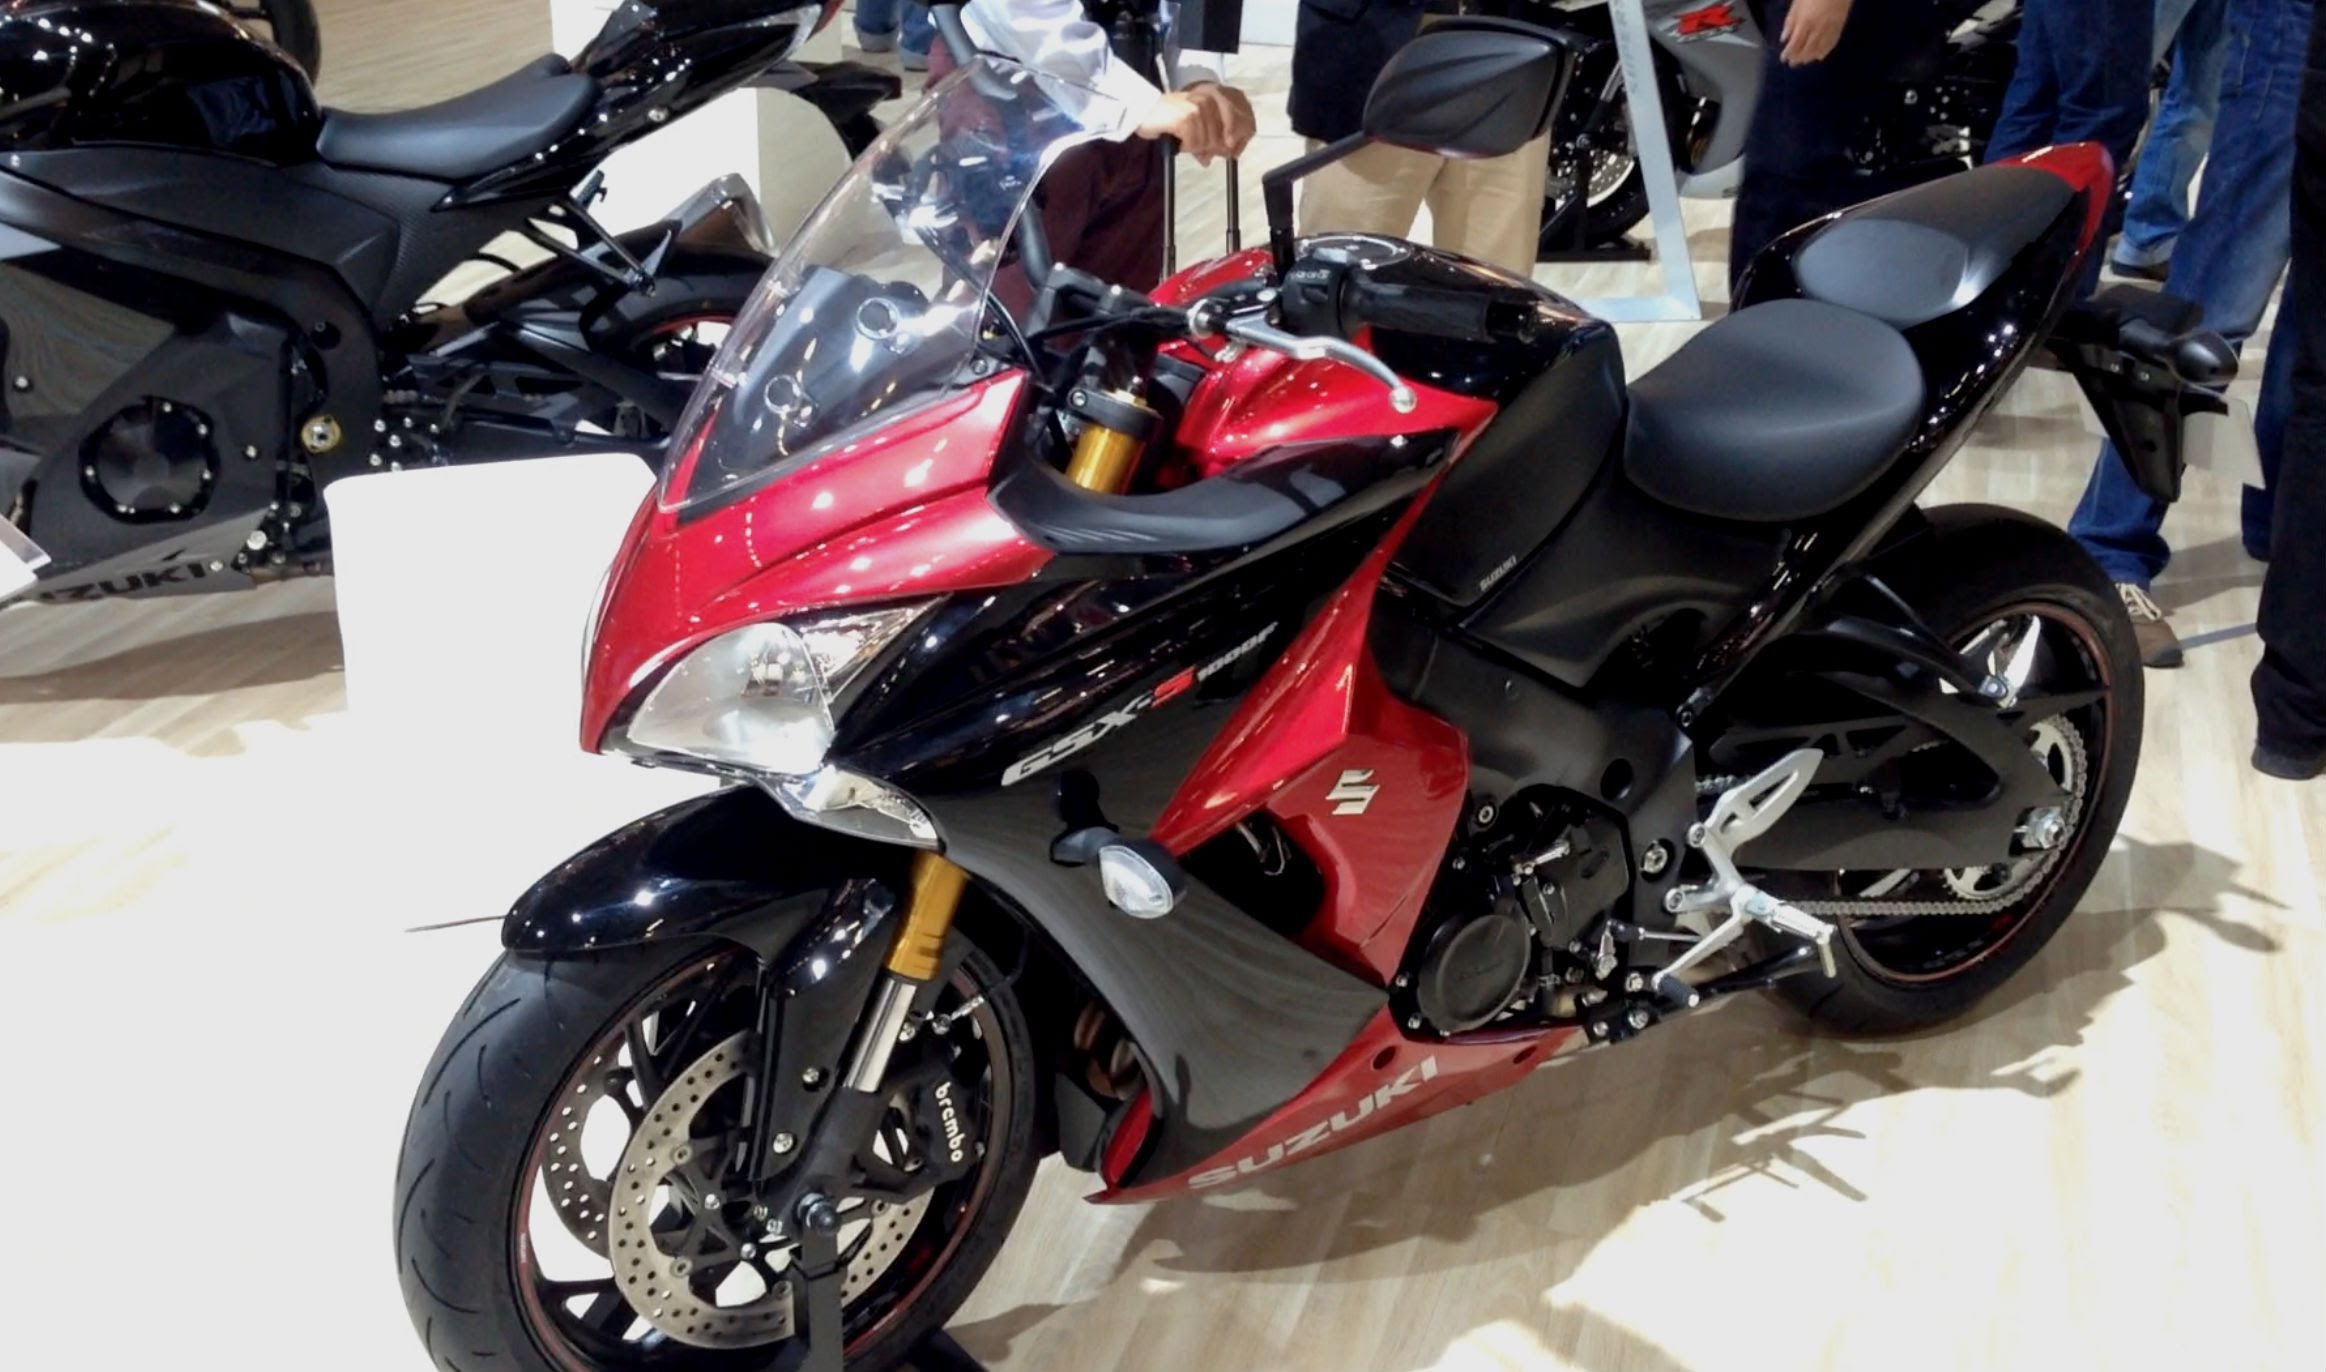 2015 Suzuki GSXS 1000 F. Look at dat red. Much red. So wow. Not my photo. Video below and text below that. KEEP ON SCROLLING SUCKA!